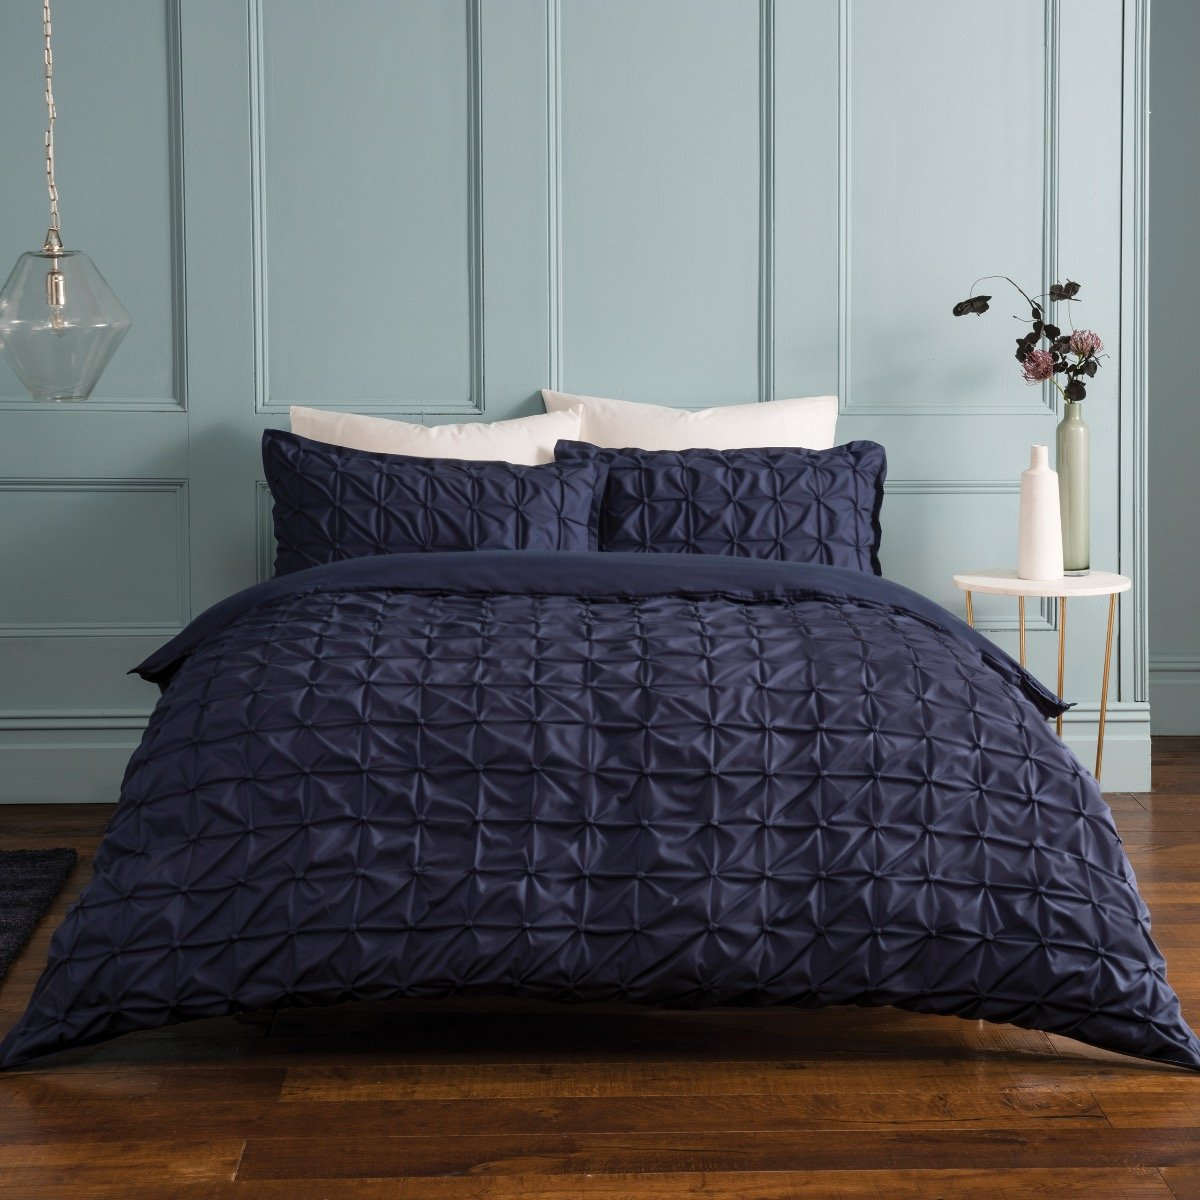 Ruched Pleat Navy Bedding - Reversible Duvet Cover and Pillowcase Set